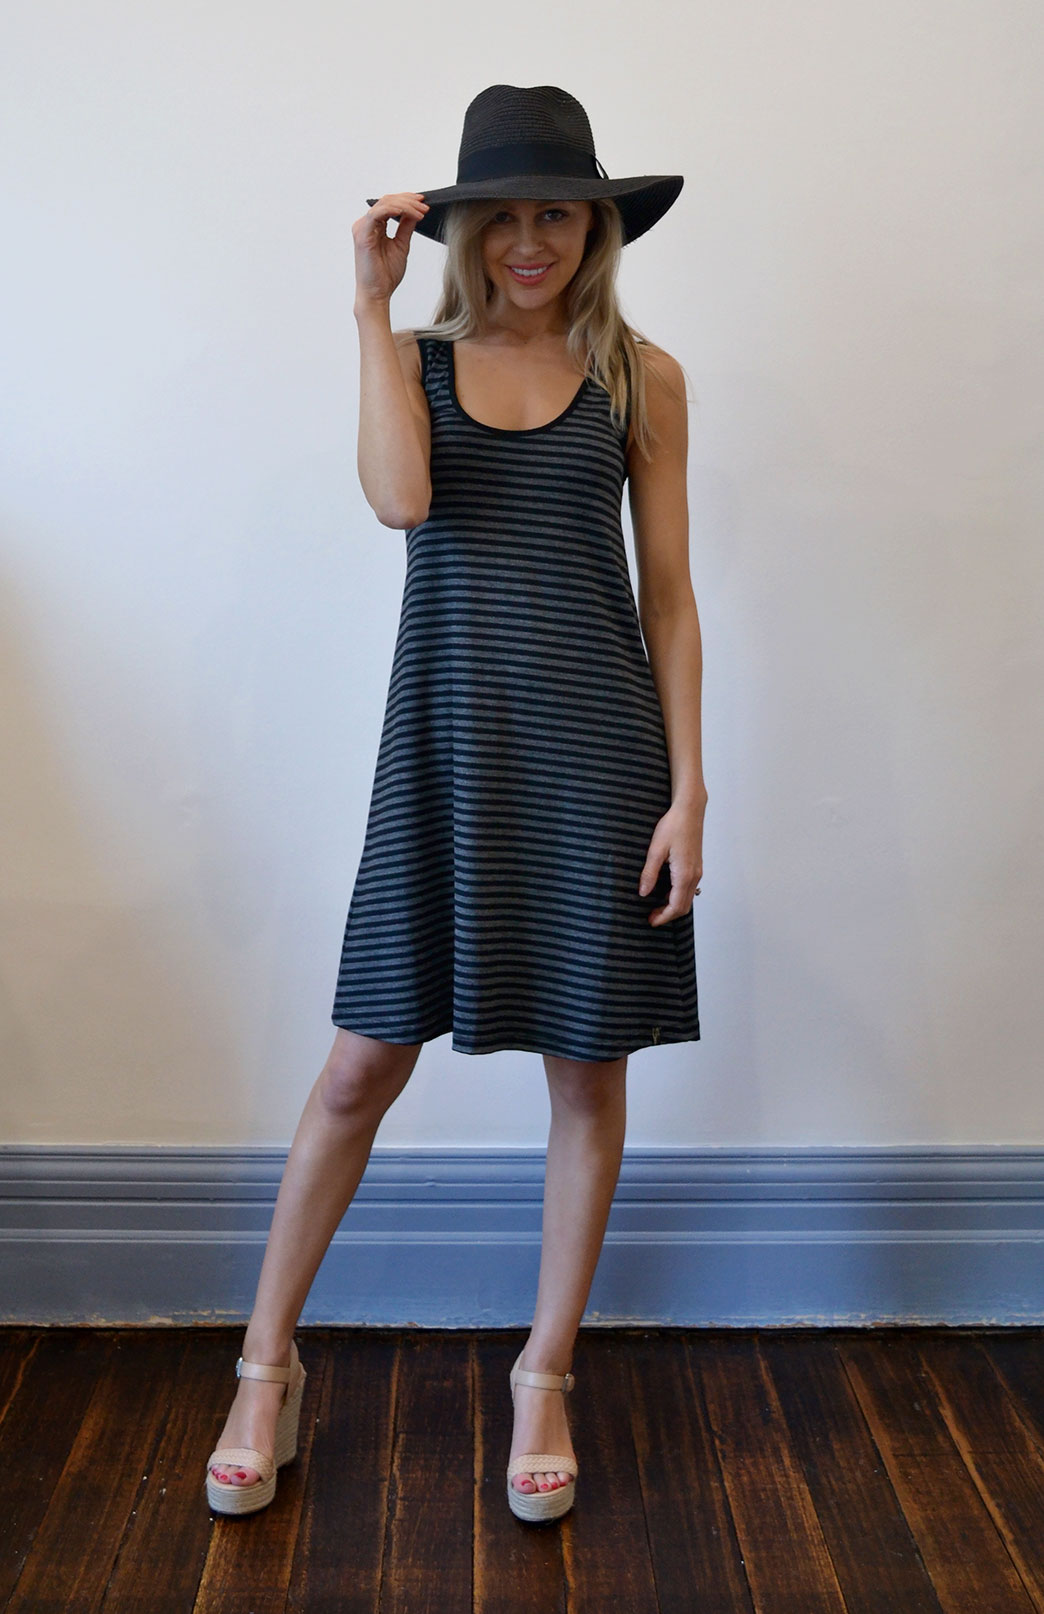 Classic Swing Dress - Women's Black & Grey Sleeveless Merino Wool Swing Dress - Smitten Merino Tasmania Australia